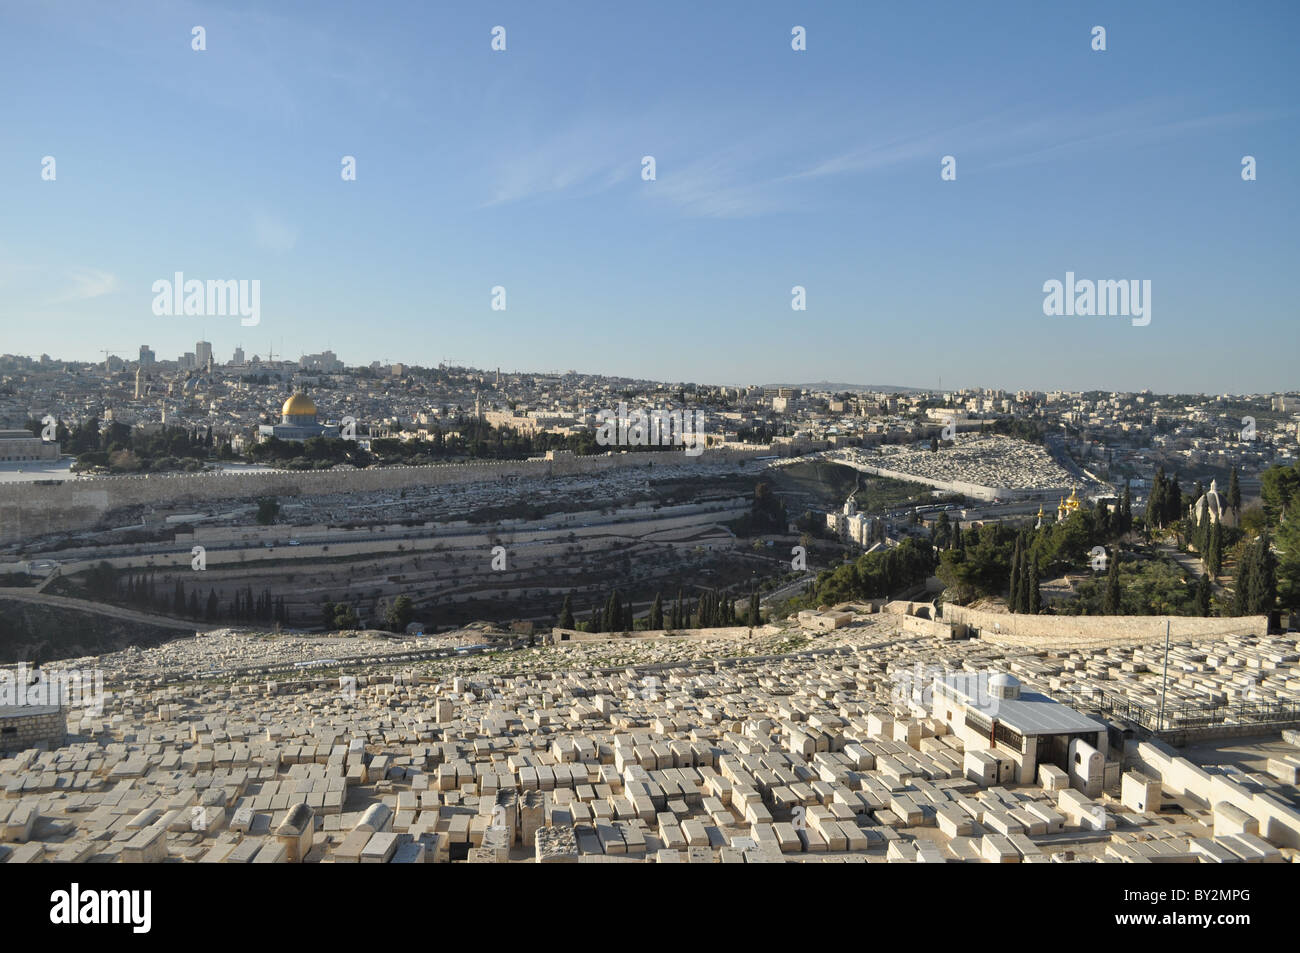 Jerusalem: the temple Mount seen from Olive's Mount with jewish cemetery - Stock Image